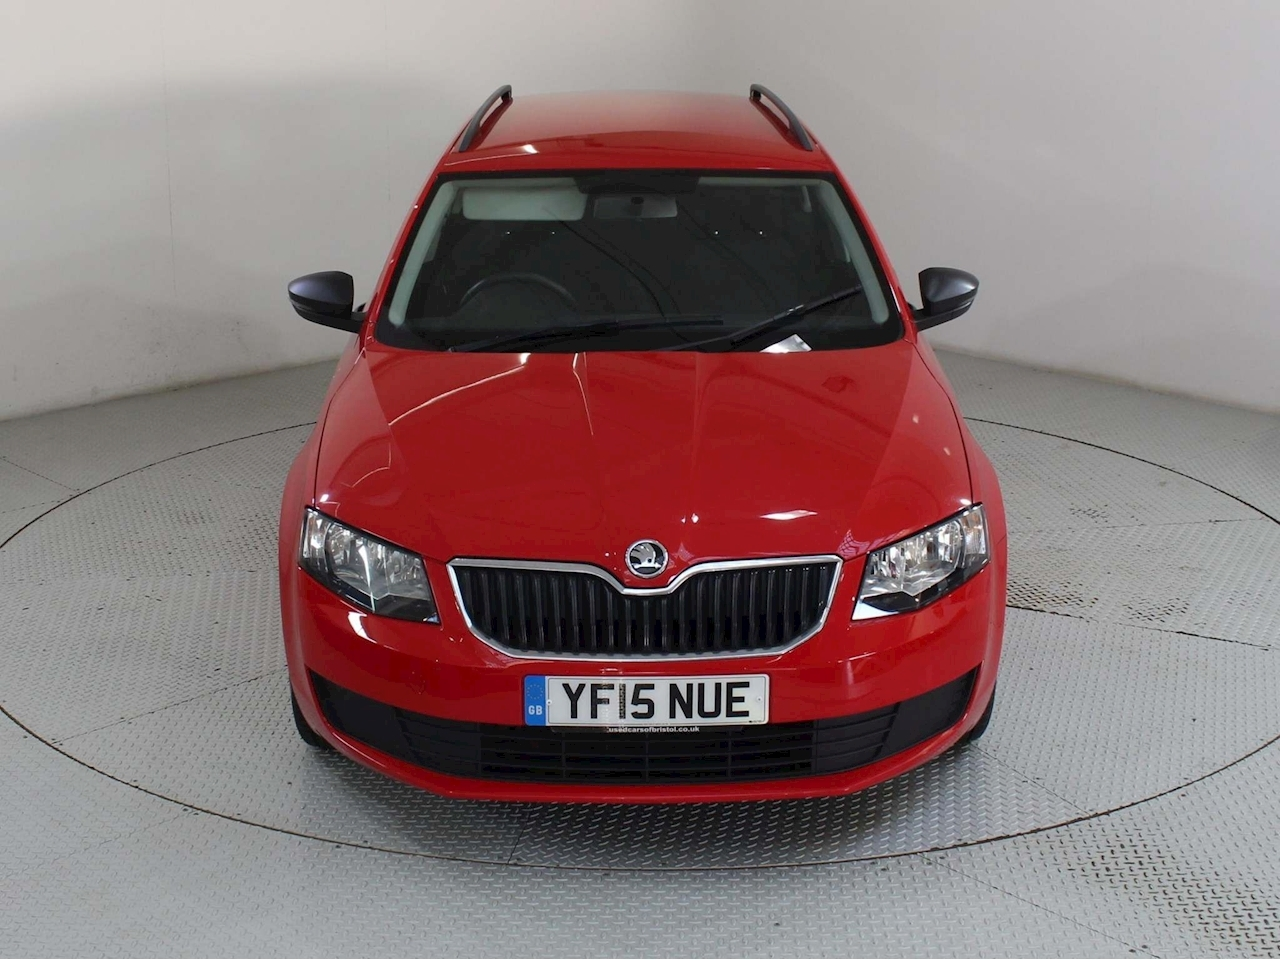 Skoda Octavia S Tdi Cr Estate 1.6 Manual Diesel